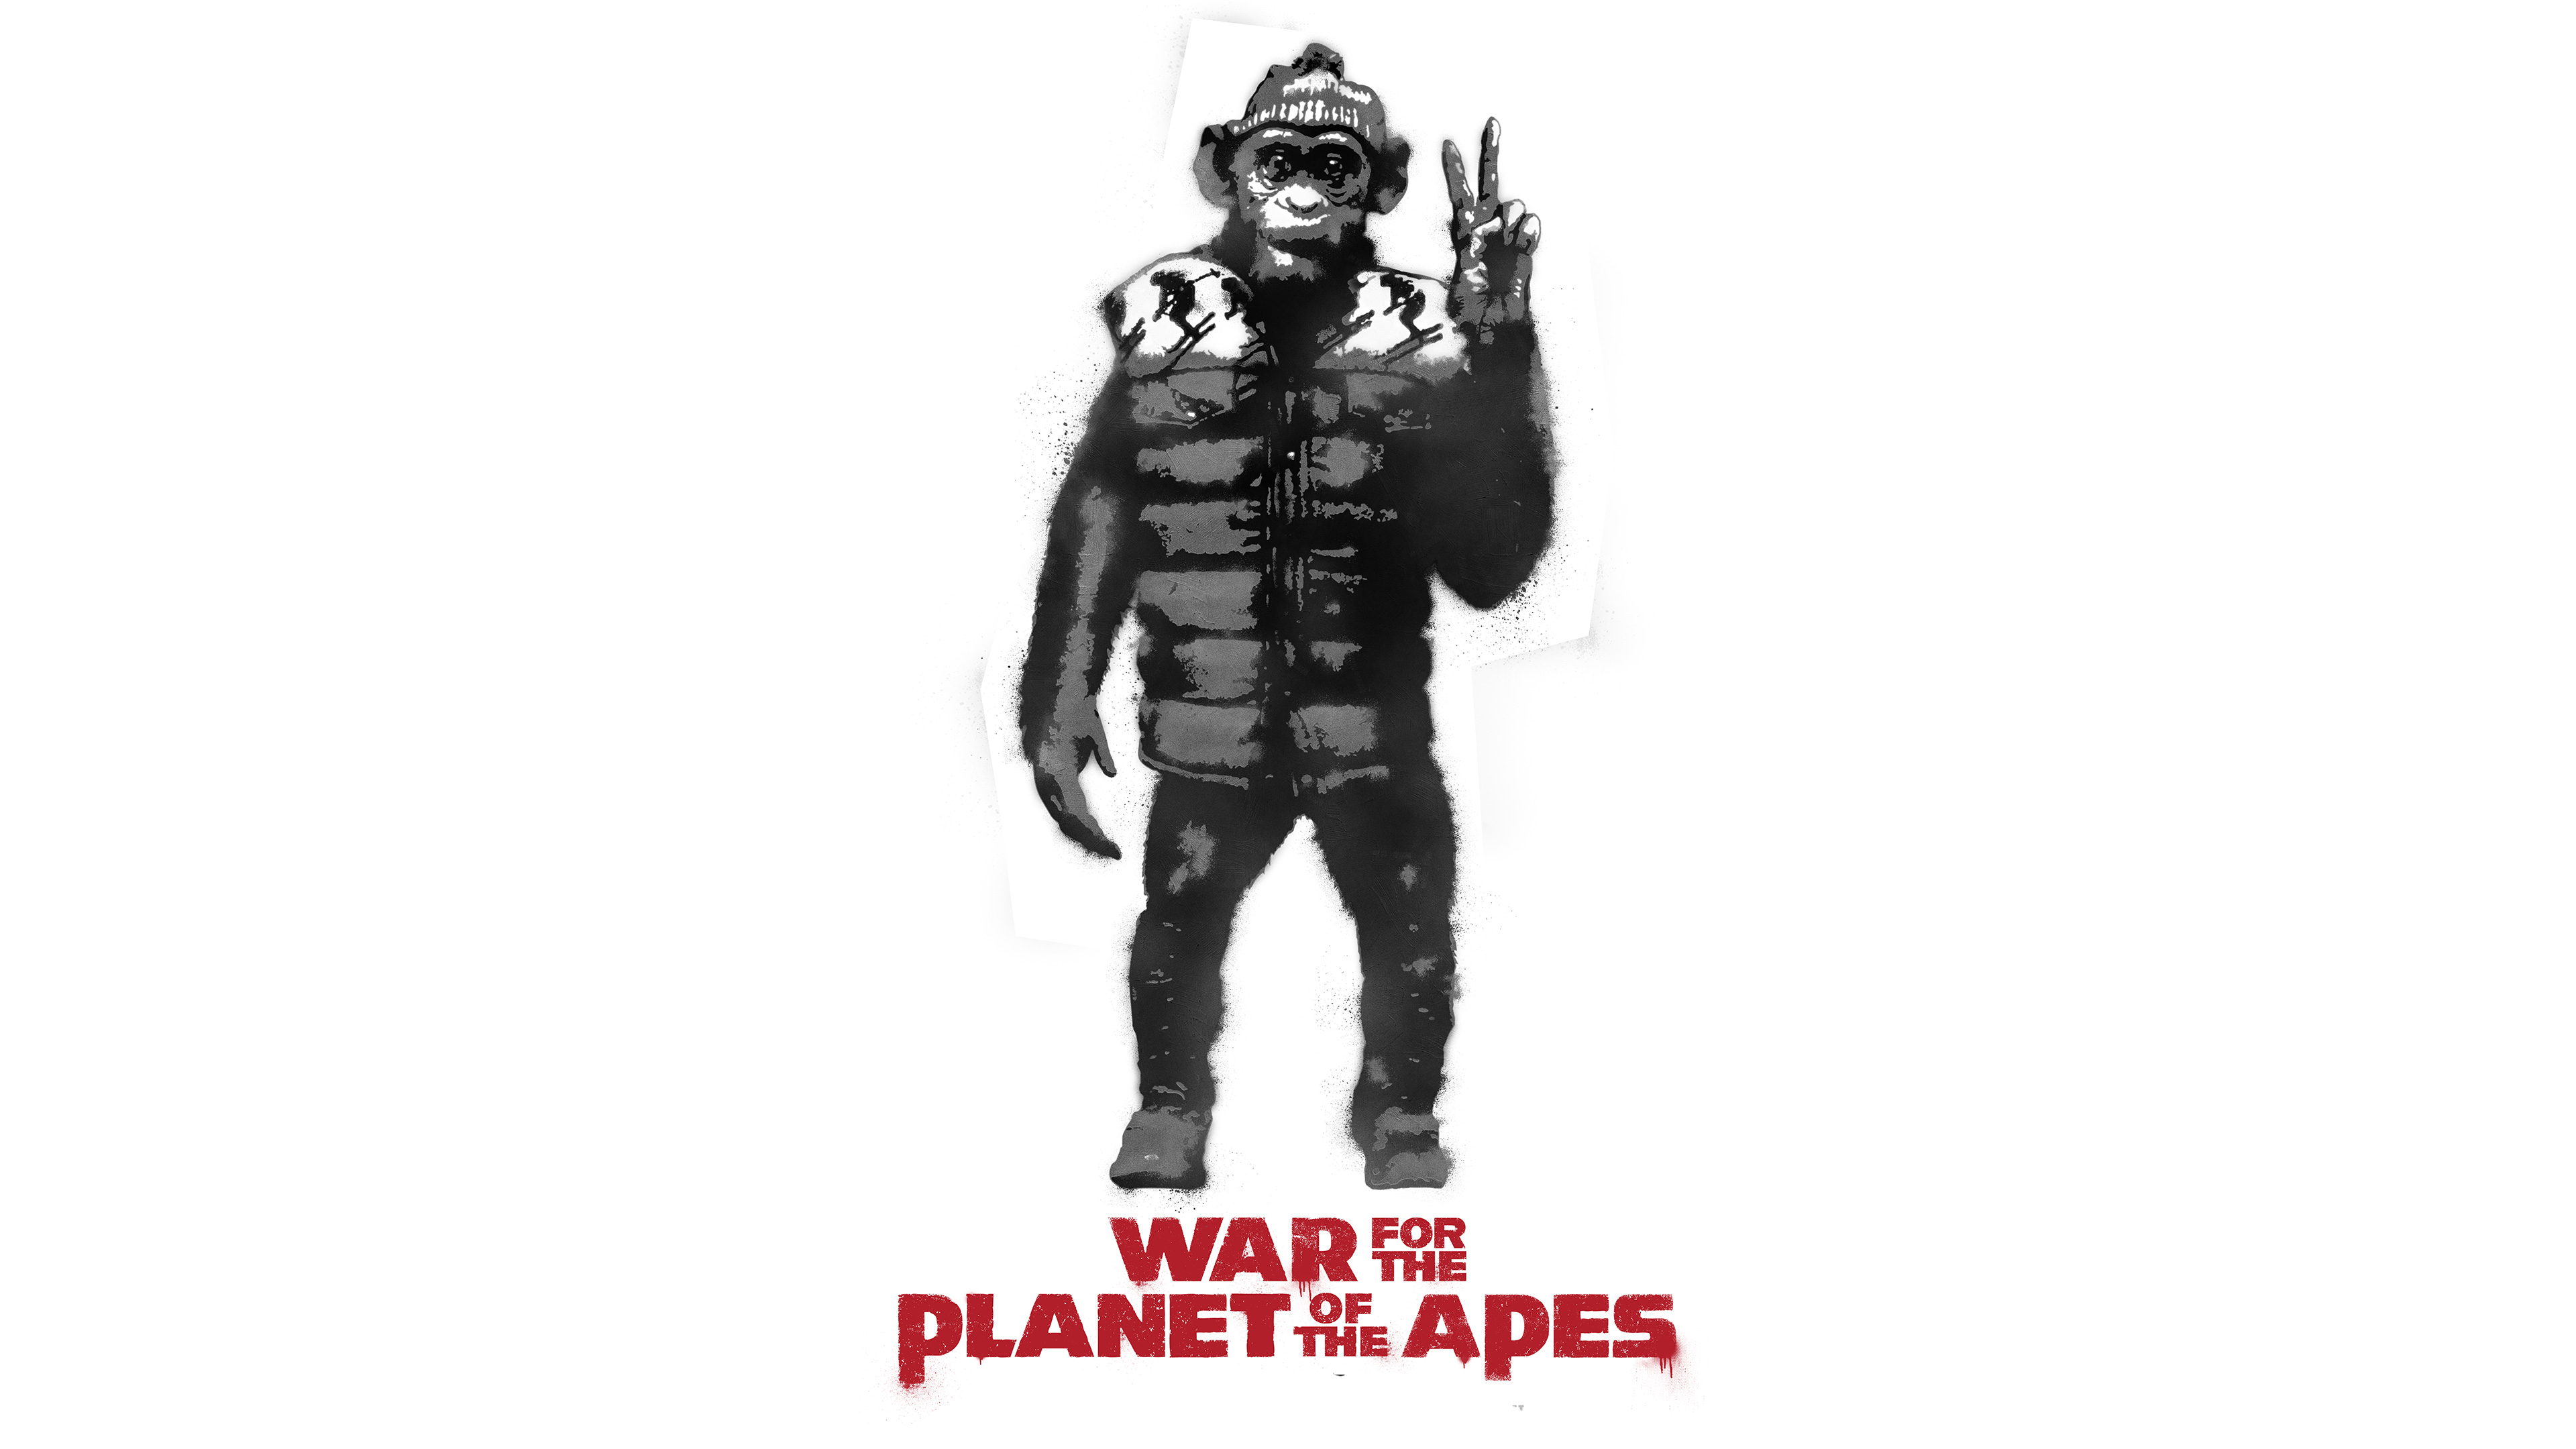 Planet Of The Apes Wallpaper: 320x480 War For The Planet Of The Apes 4k Apple Iphone